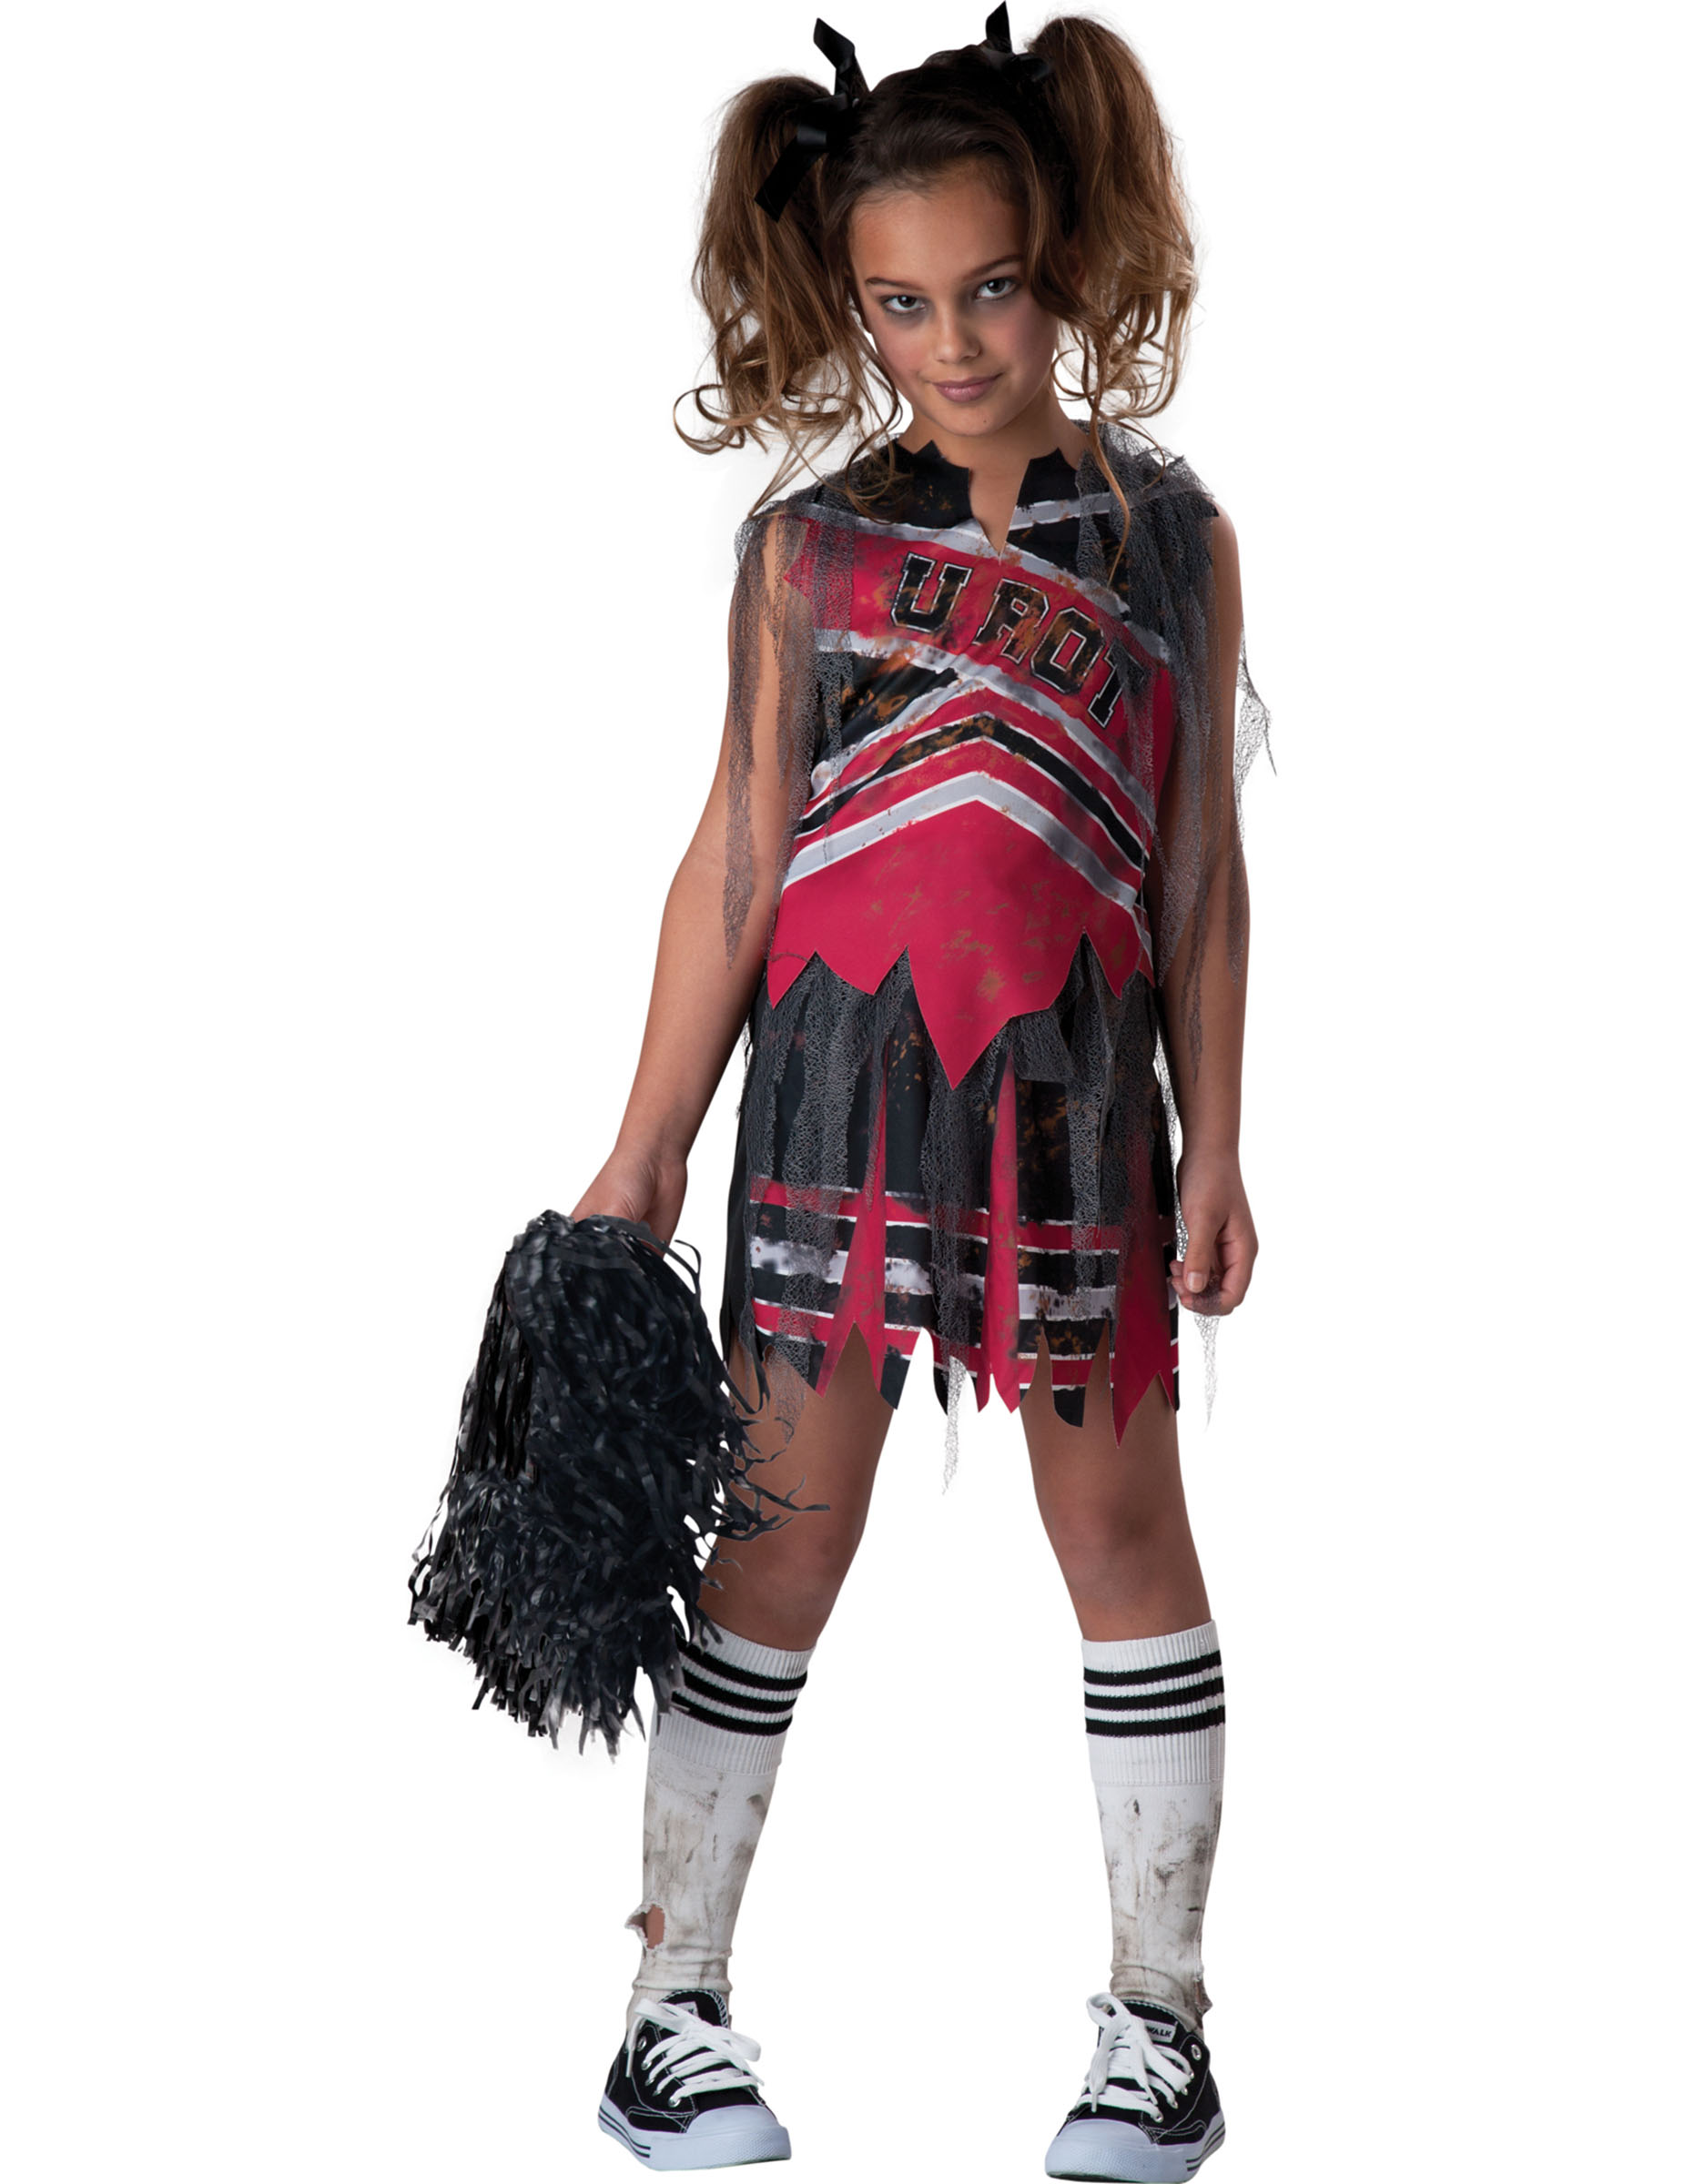 zombie cheerleader halloween kinderkost m schwarz rot weiss g nstige faschings kost me bei. Black Bedroom Furniture Sets. Home Design Ideas